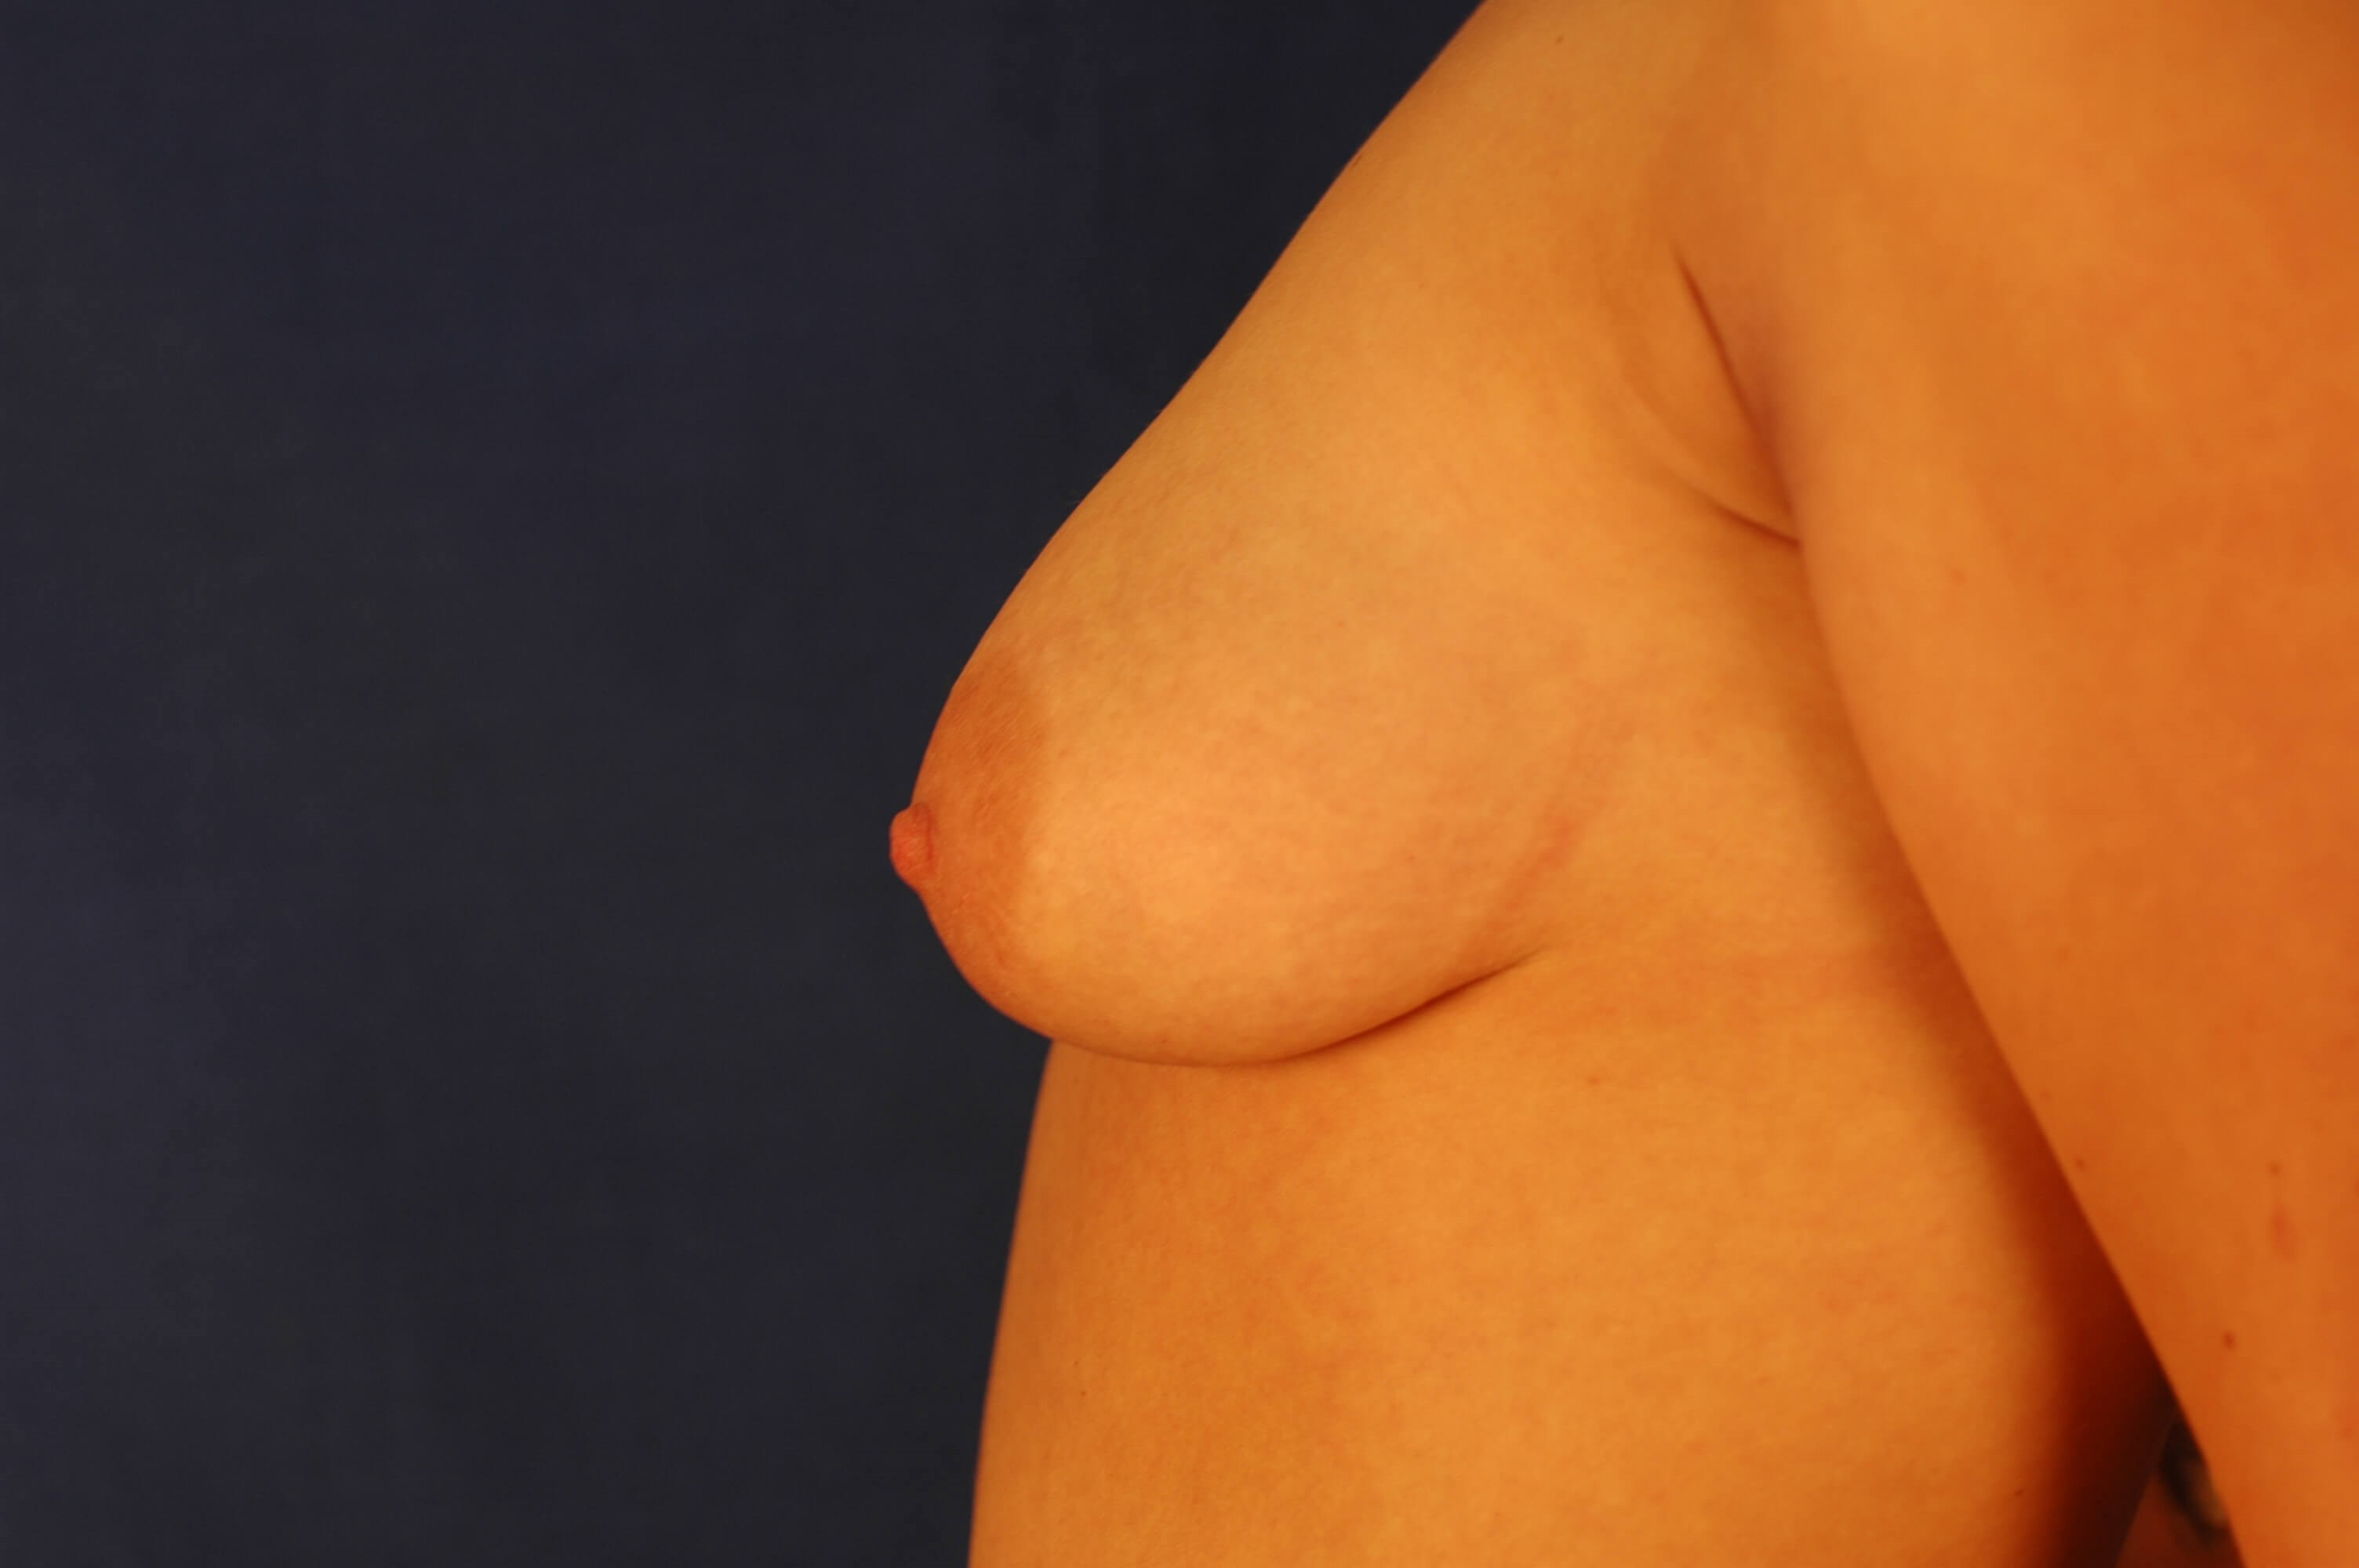 Newport Beach Breast Lift Side View Before